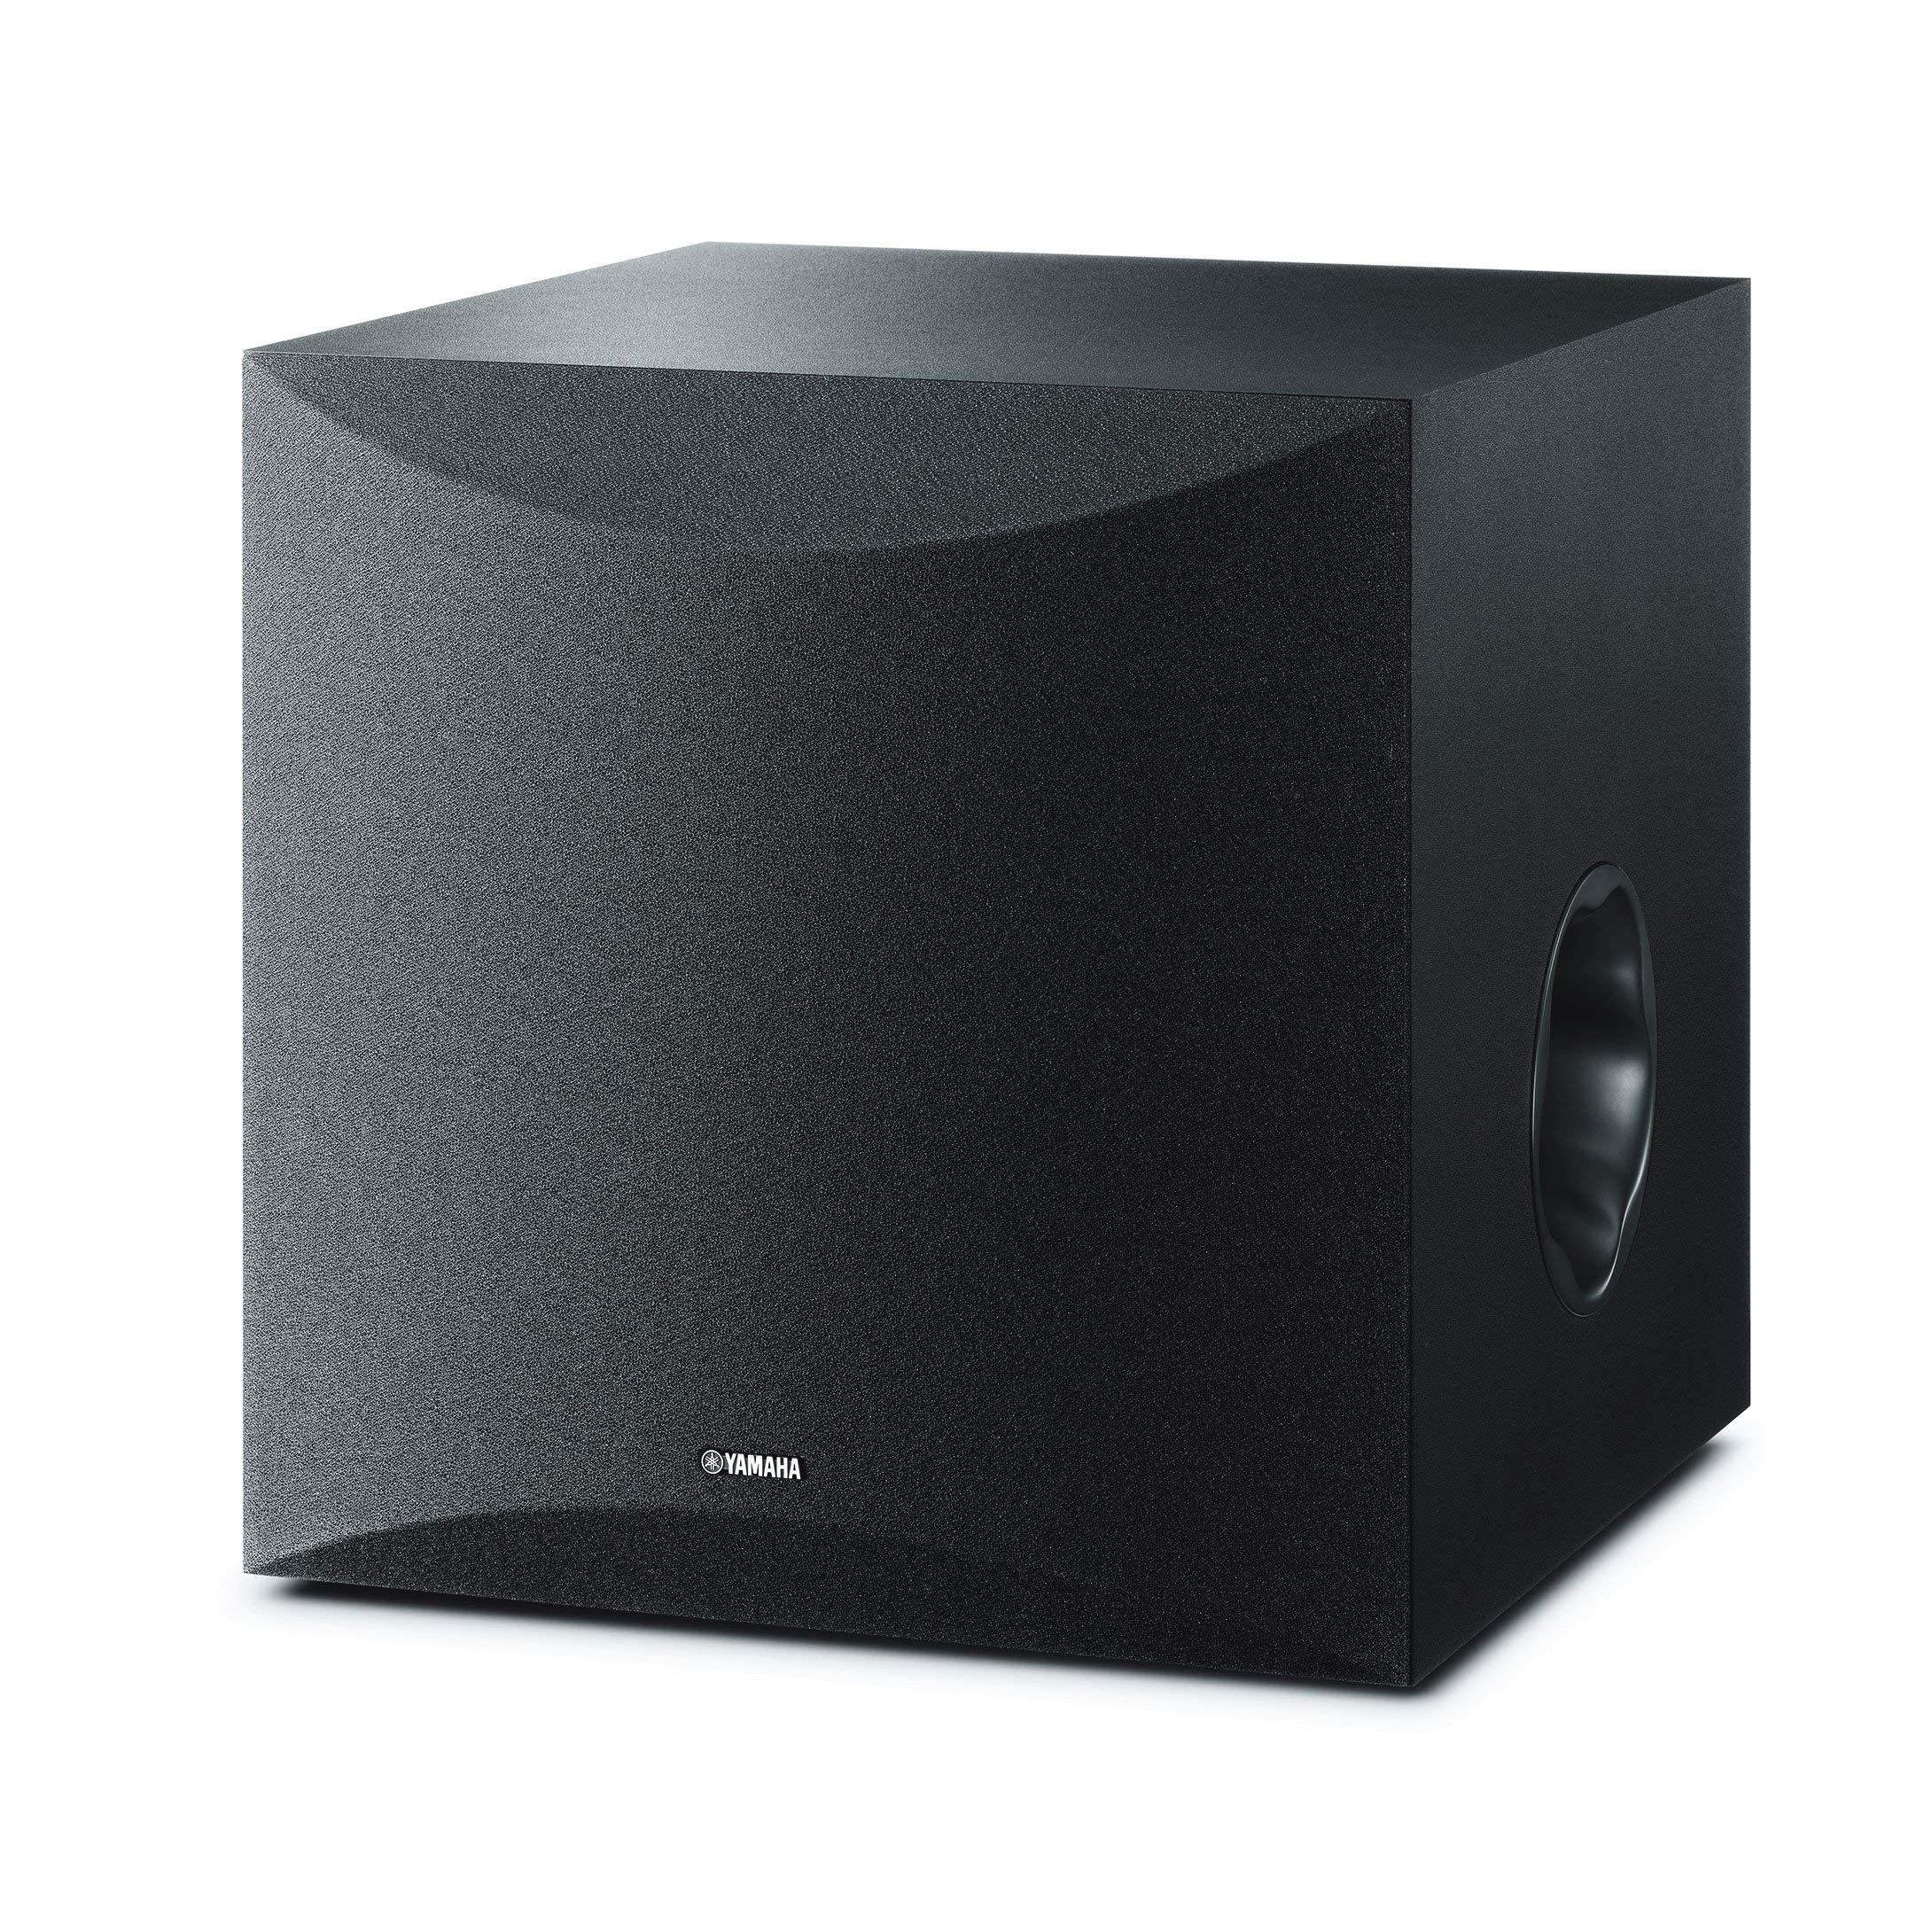 Yamaha 10'' 100W Powered Subwoofer - Black (NS-SW100BL) (Renewed) by Yamaha Audio